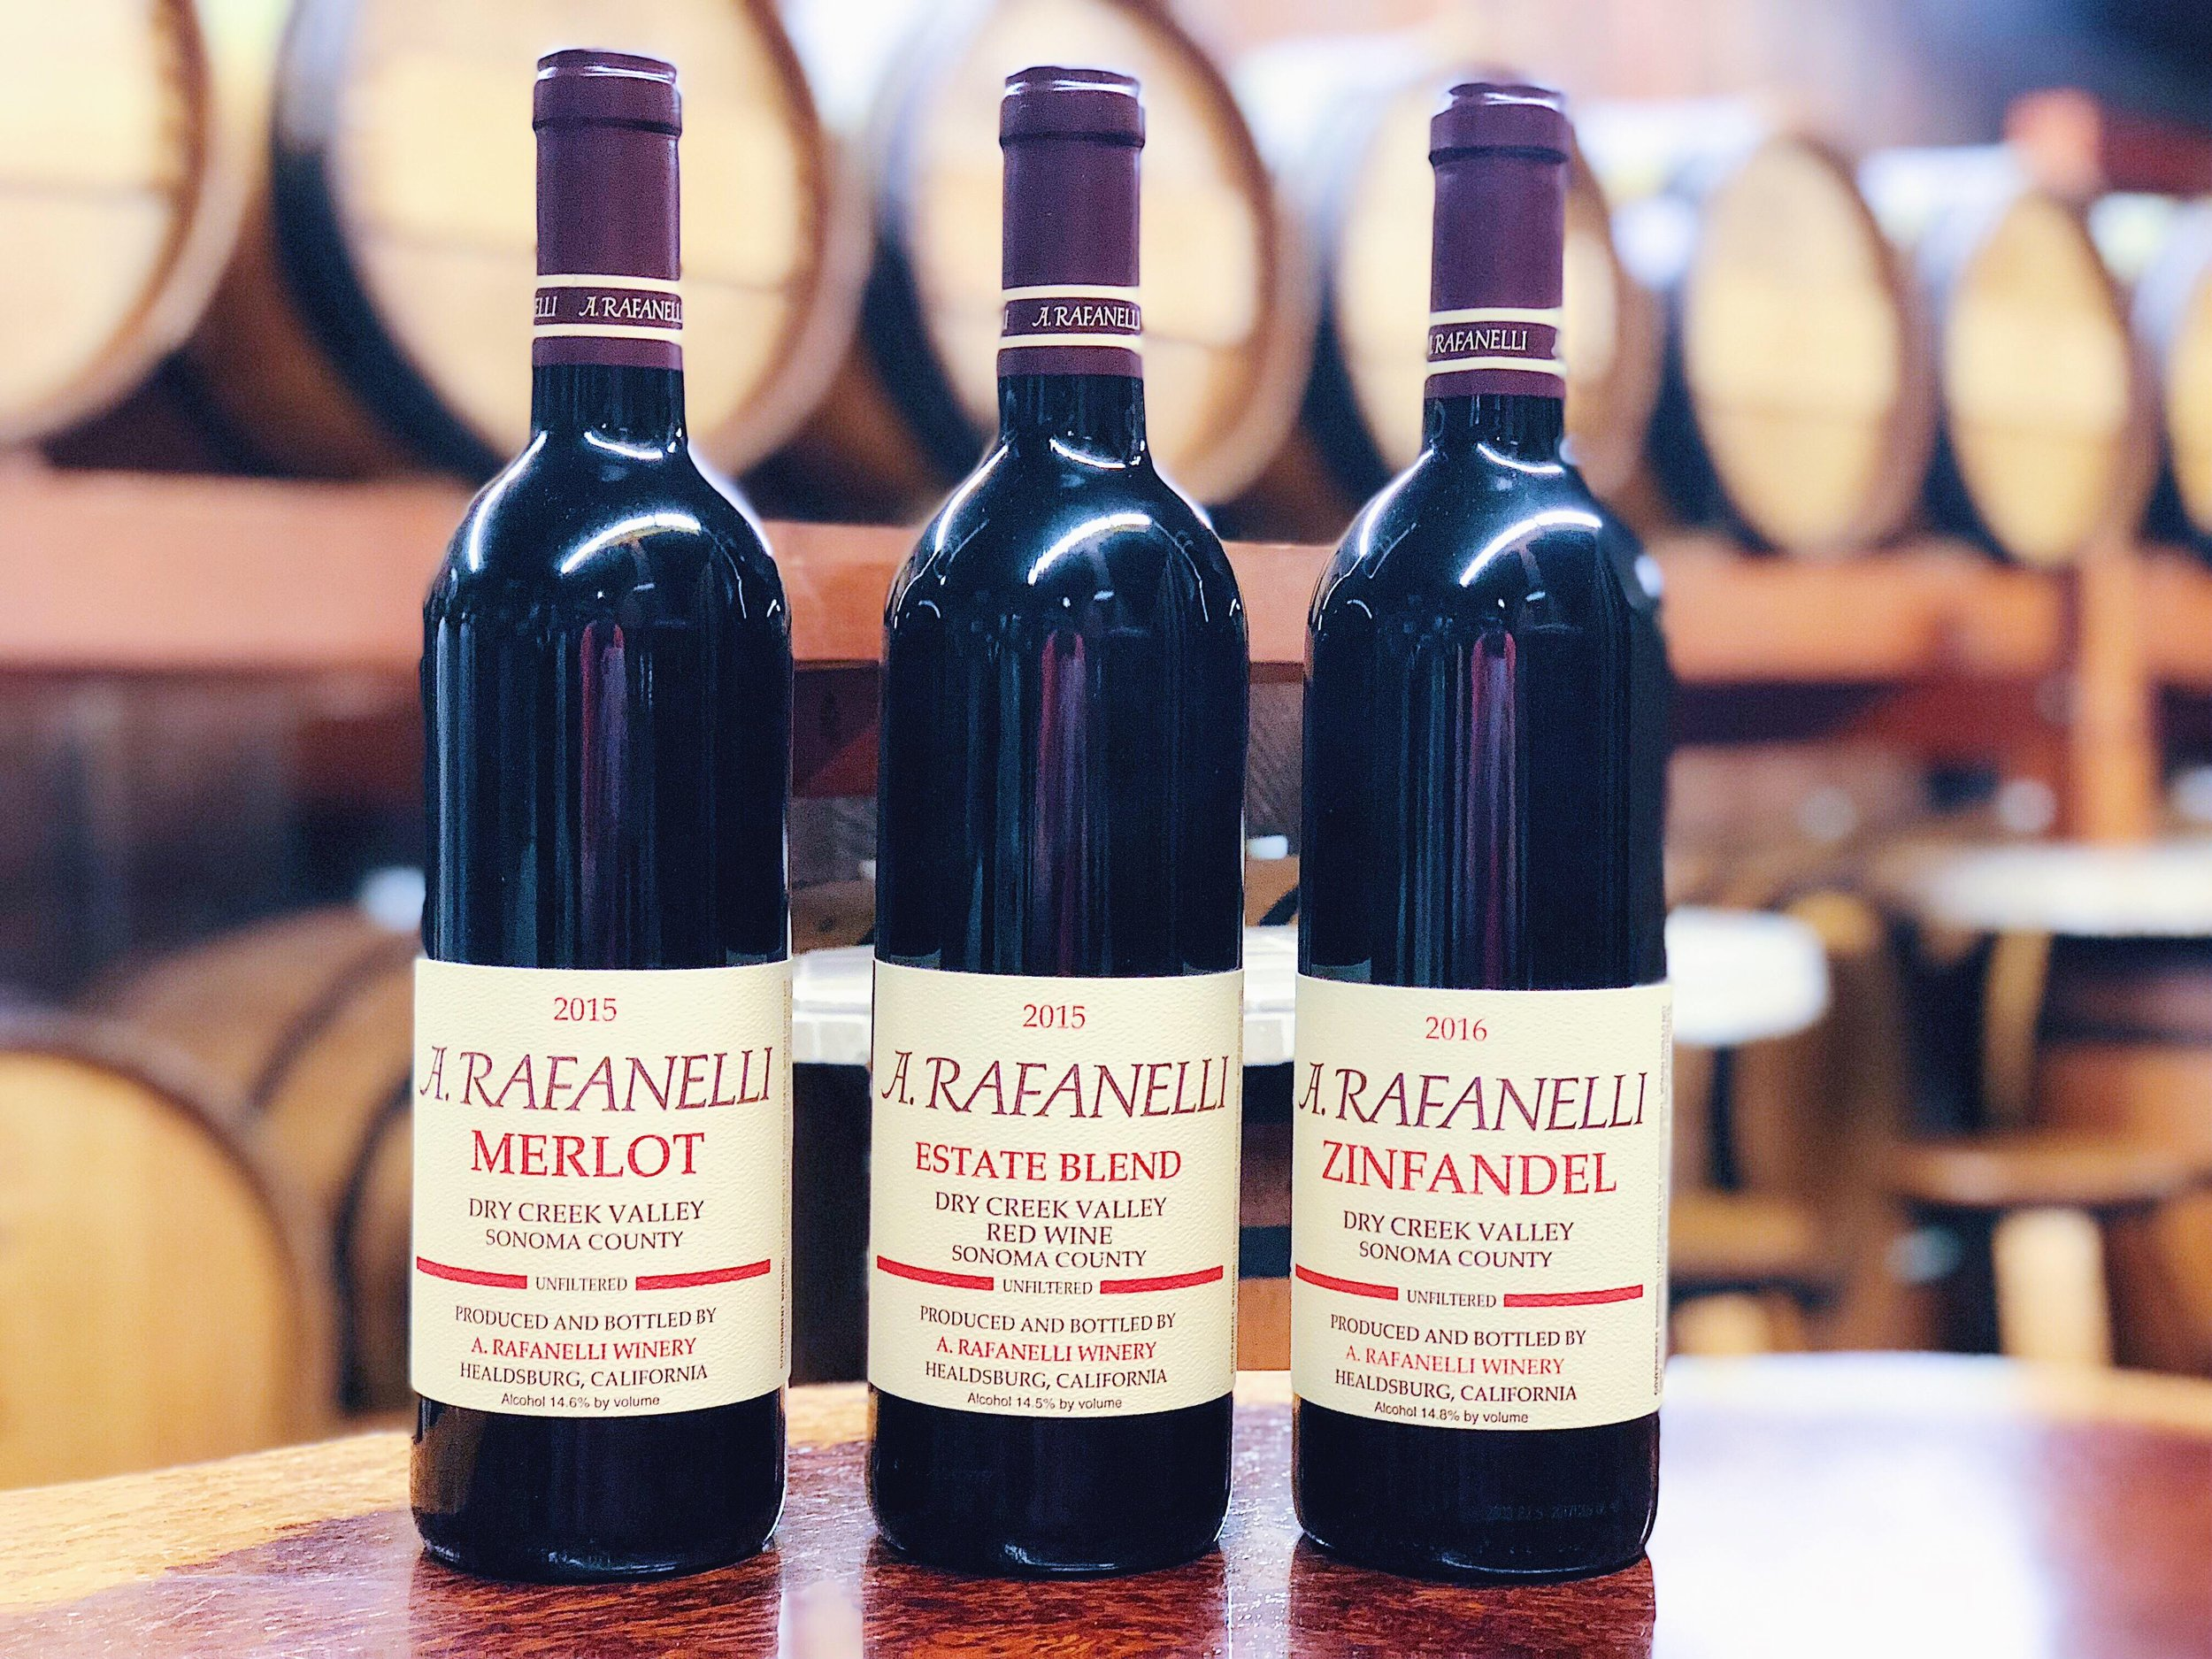 Rafanelli Wine Bottles Limited Availability